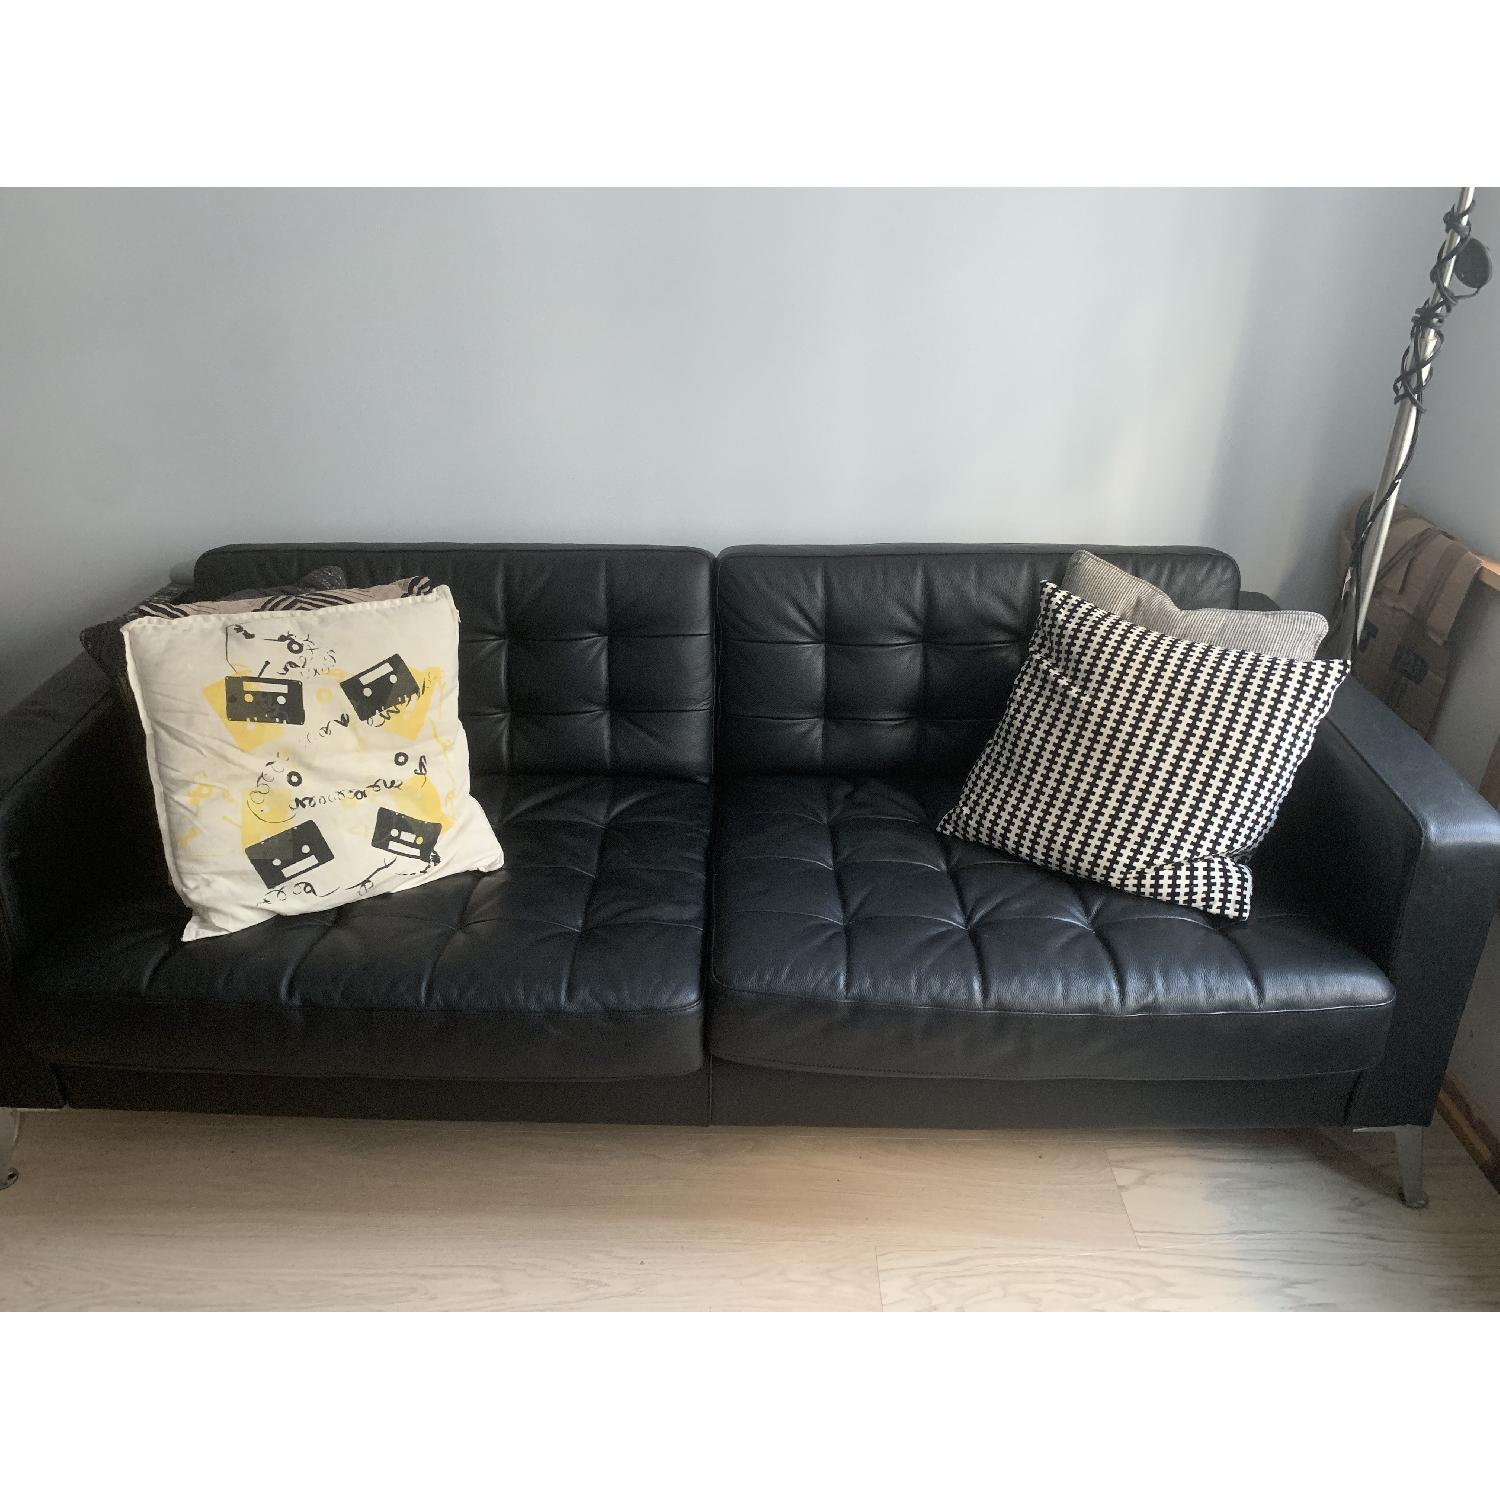 Excellent Ikea Landskrona Leather Sofa Aptdeco Creativecarmelina Interior Chair Design Creativecarmelinacom